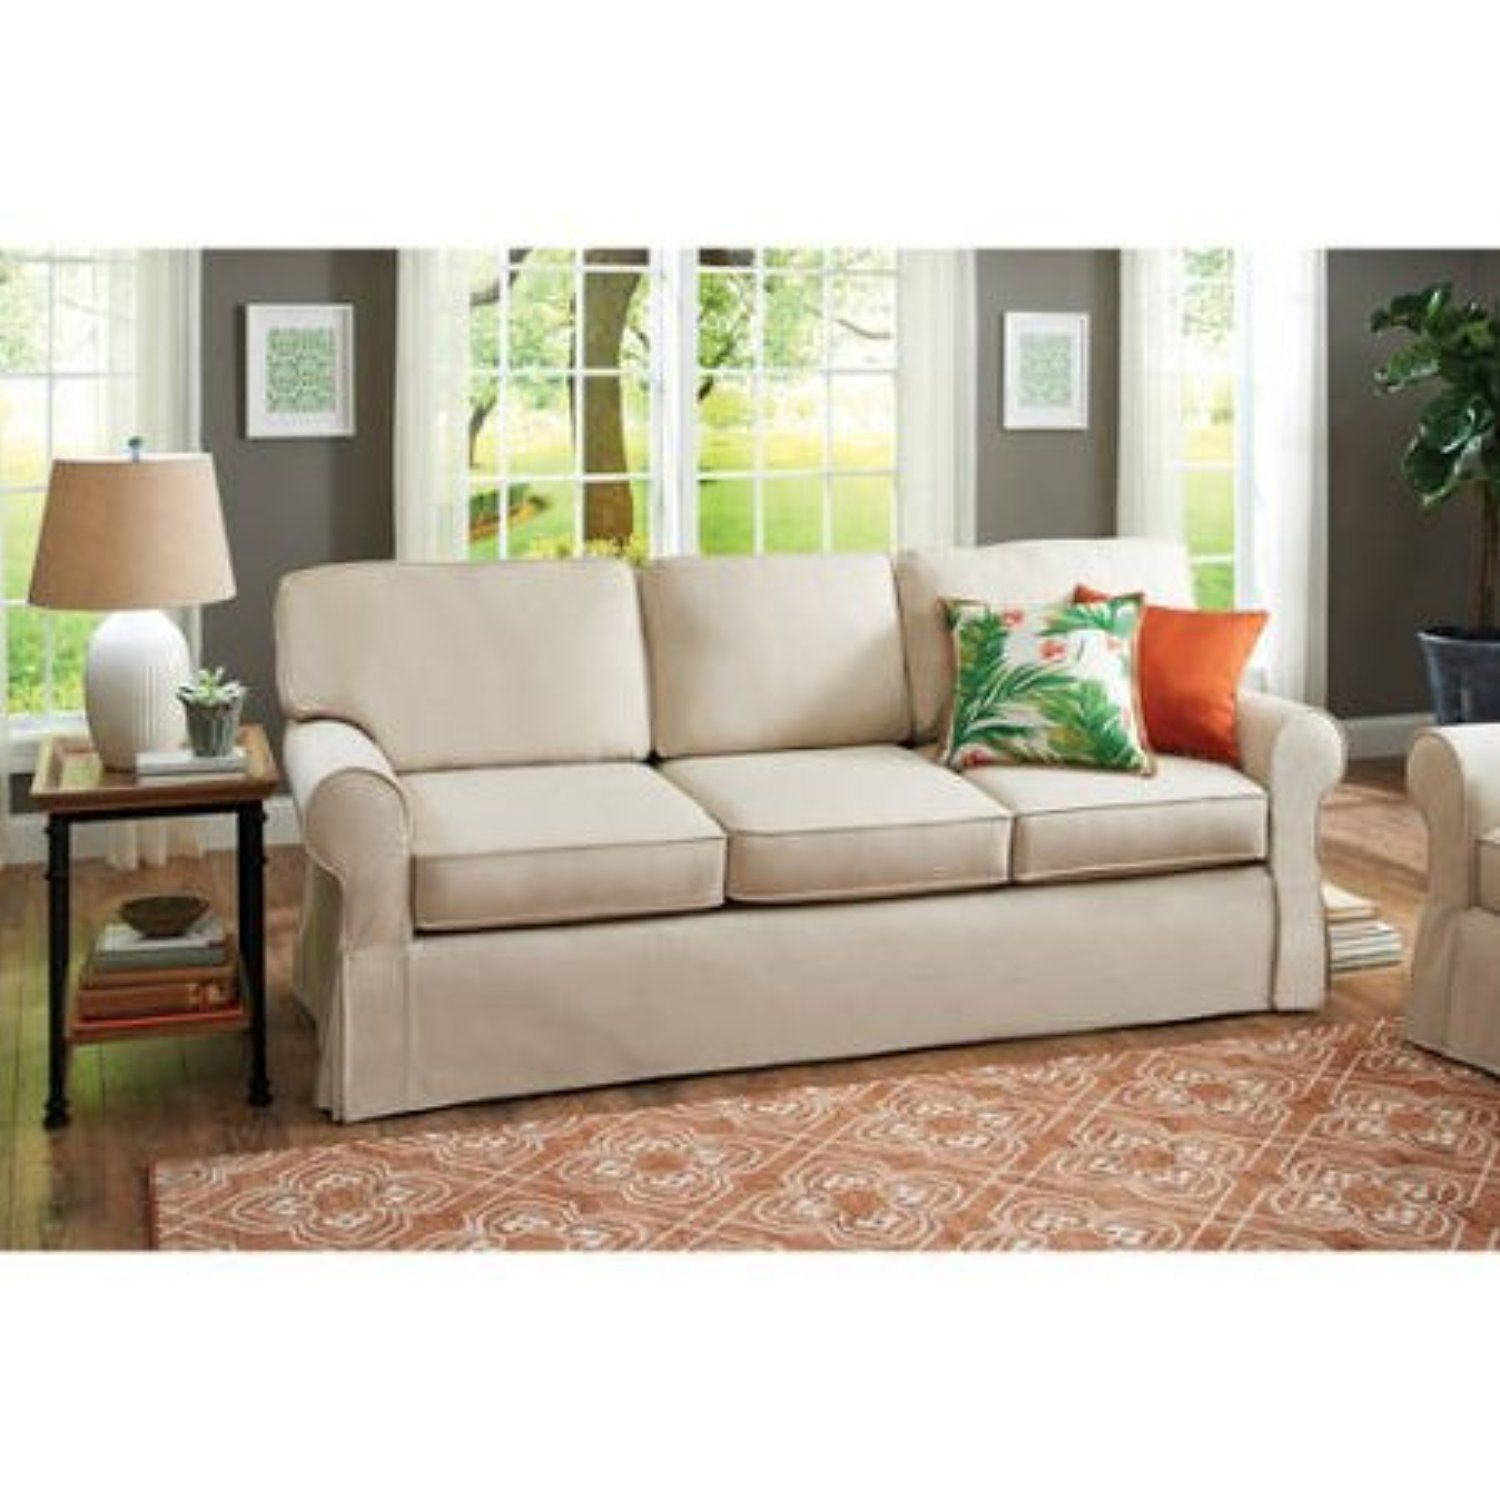 Better Homes And Gardens Slip Cover Pala Sofa Ivory    Awesome Products  Selected By Anna